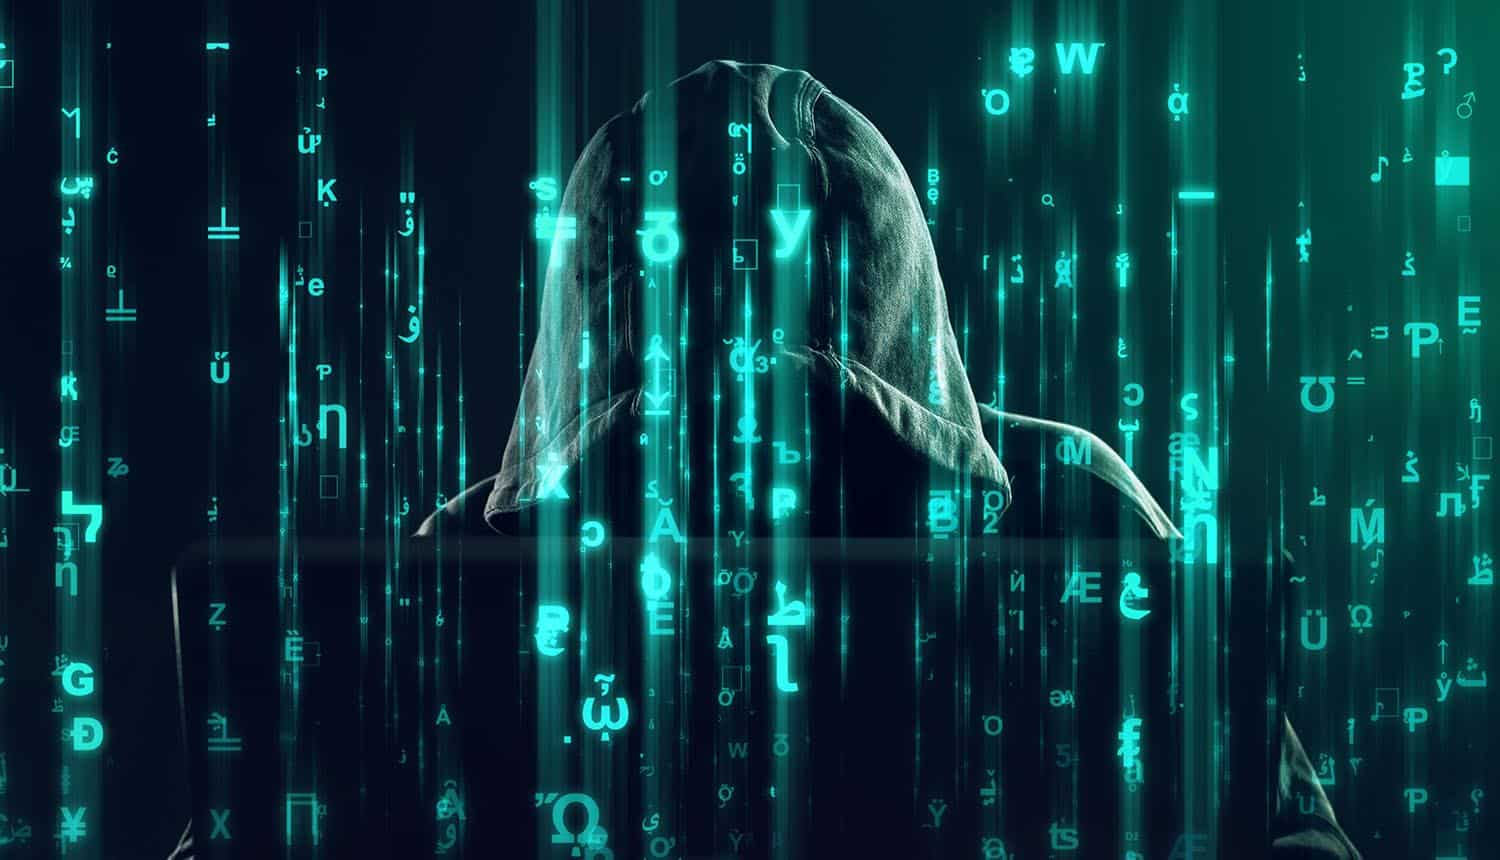 Hooded hacker working on laptop with code overlaying image showing ransomware attacks treated as terrorism